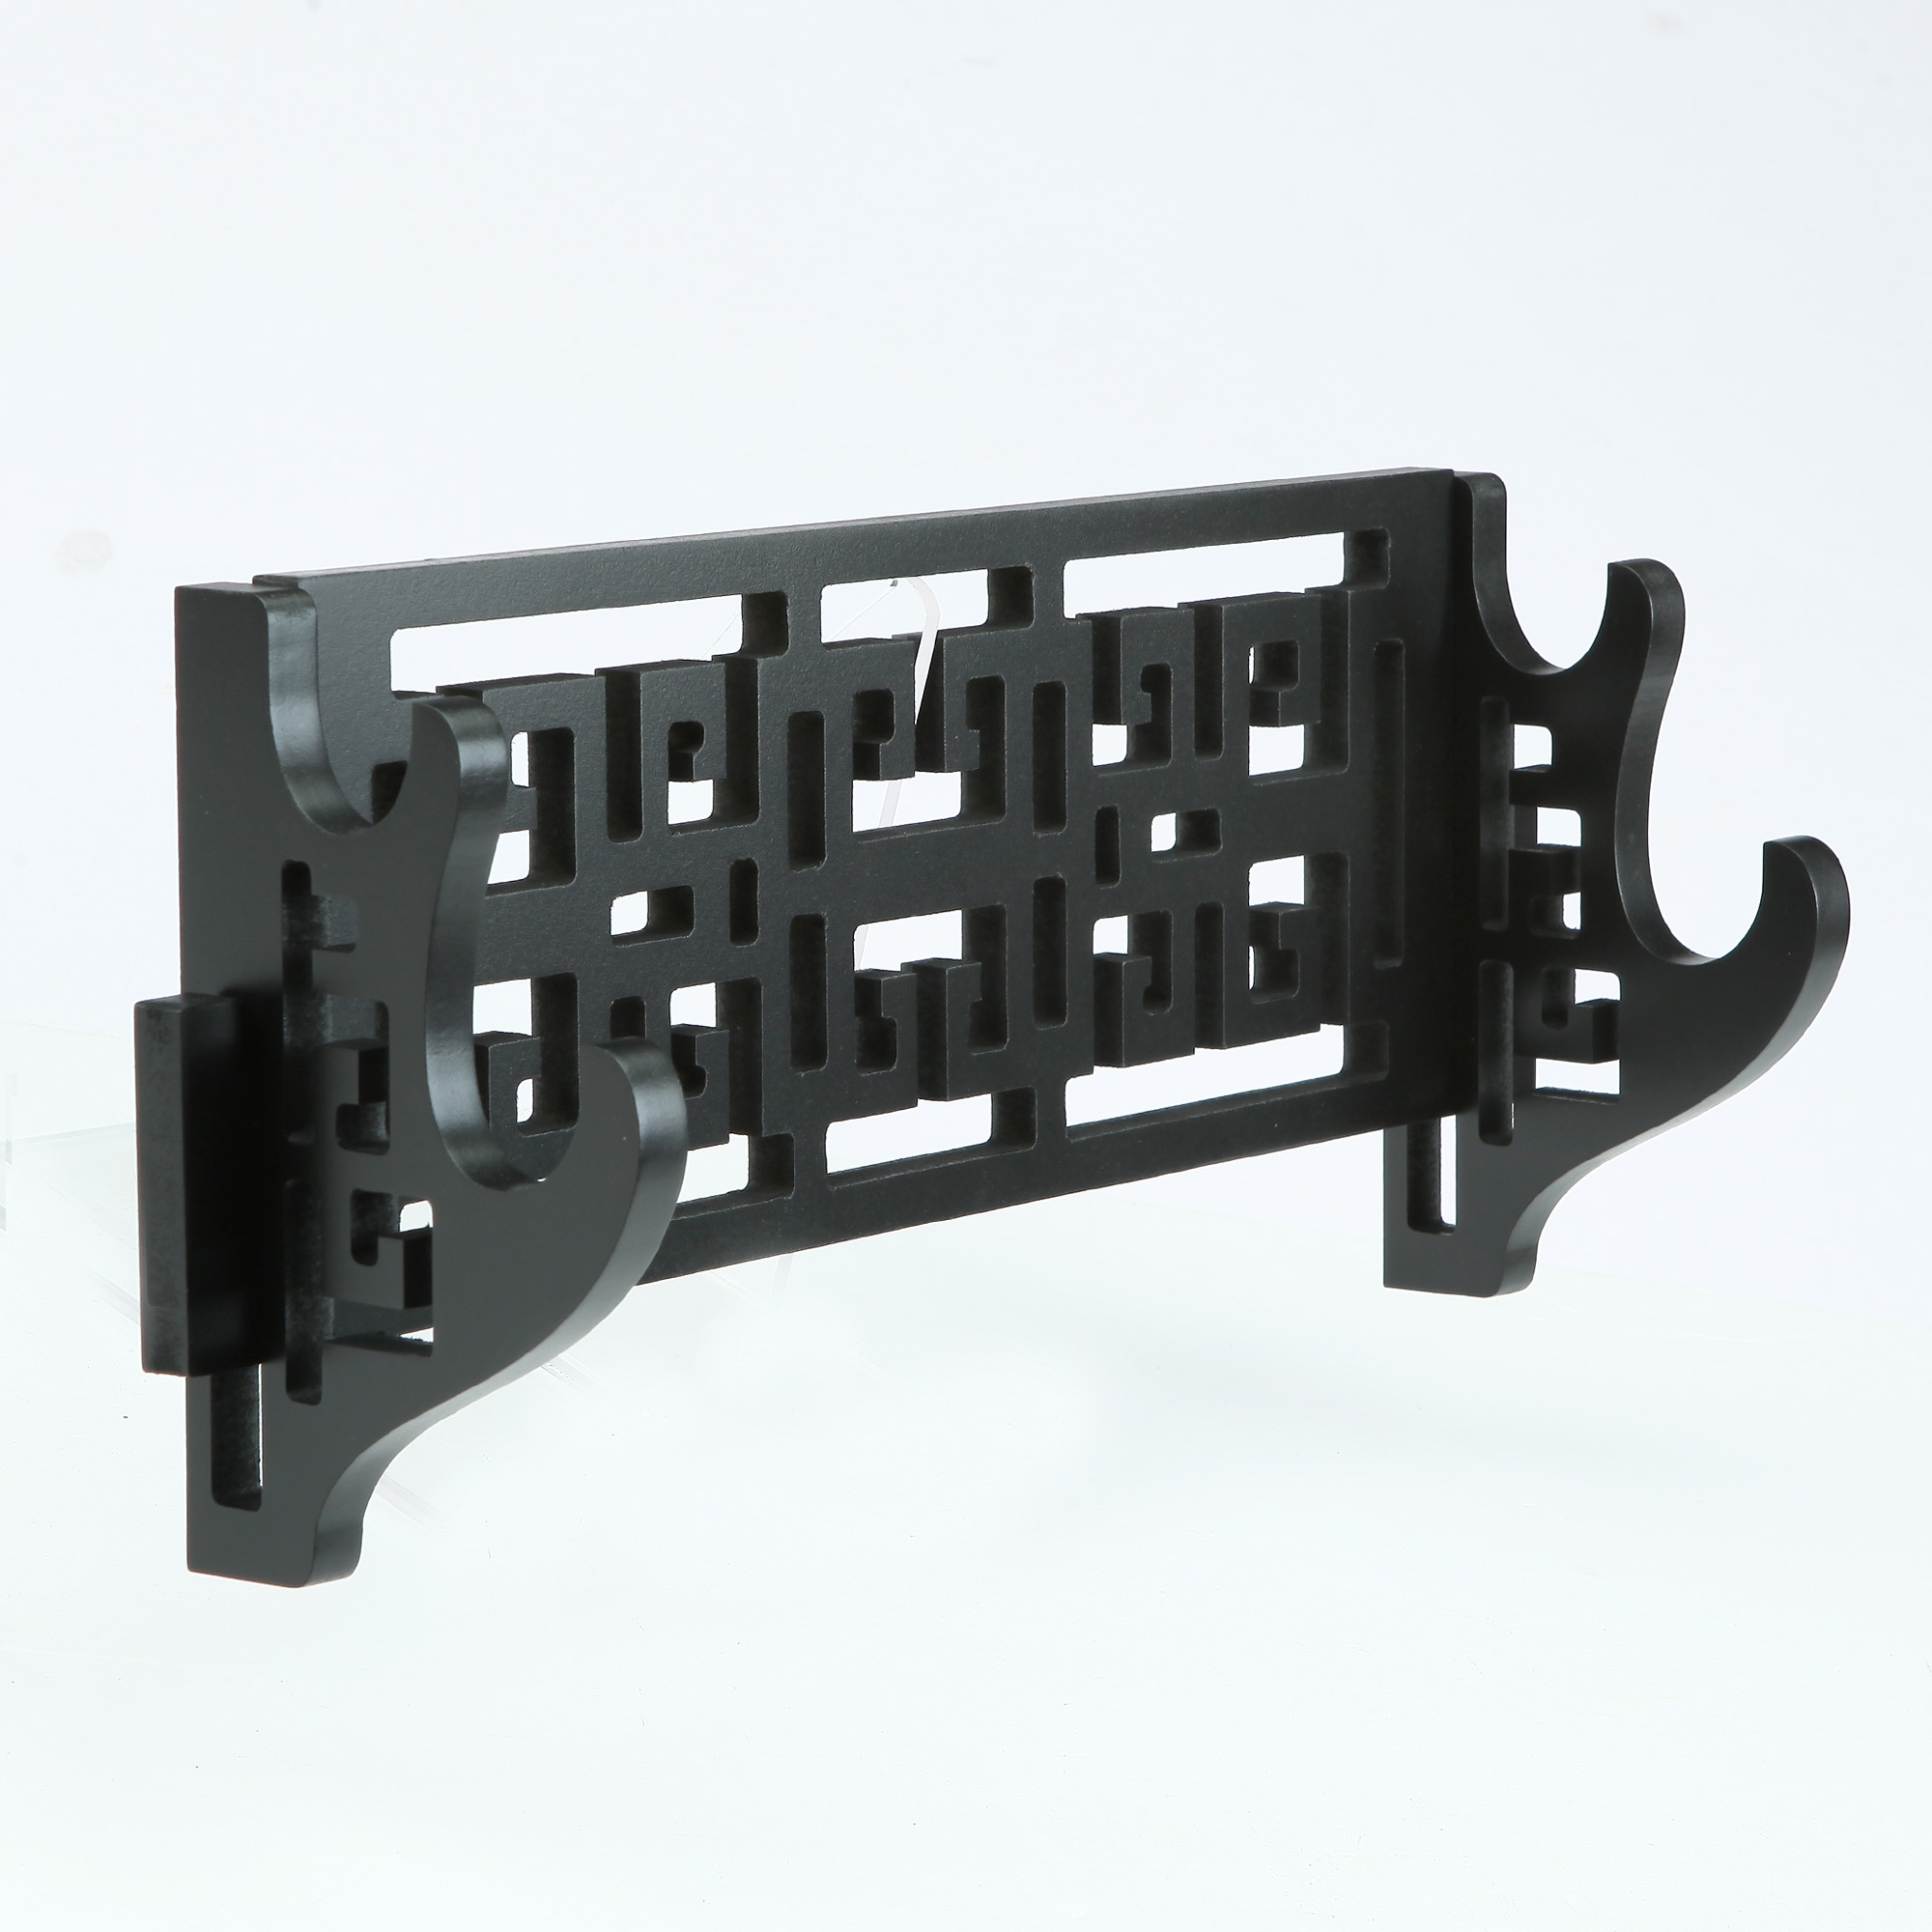 Handmade Back Wooden Double Tier Katana Stand Holder Display Rack Stand Wall Mount